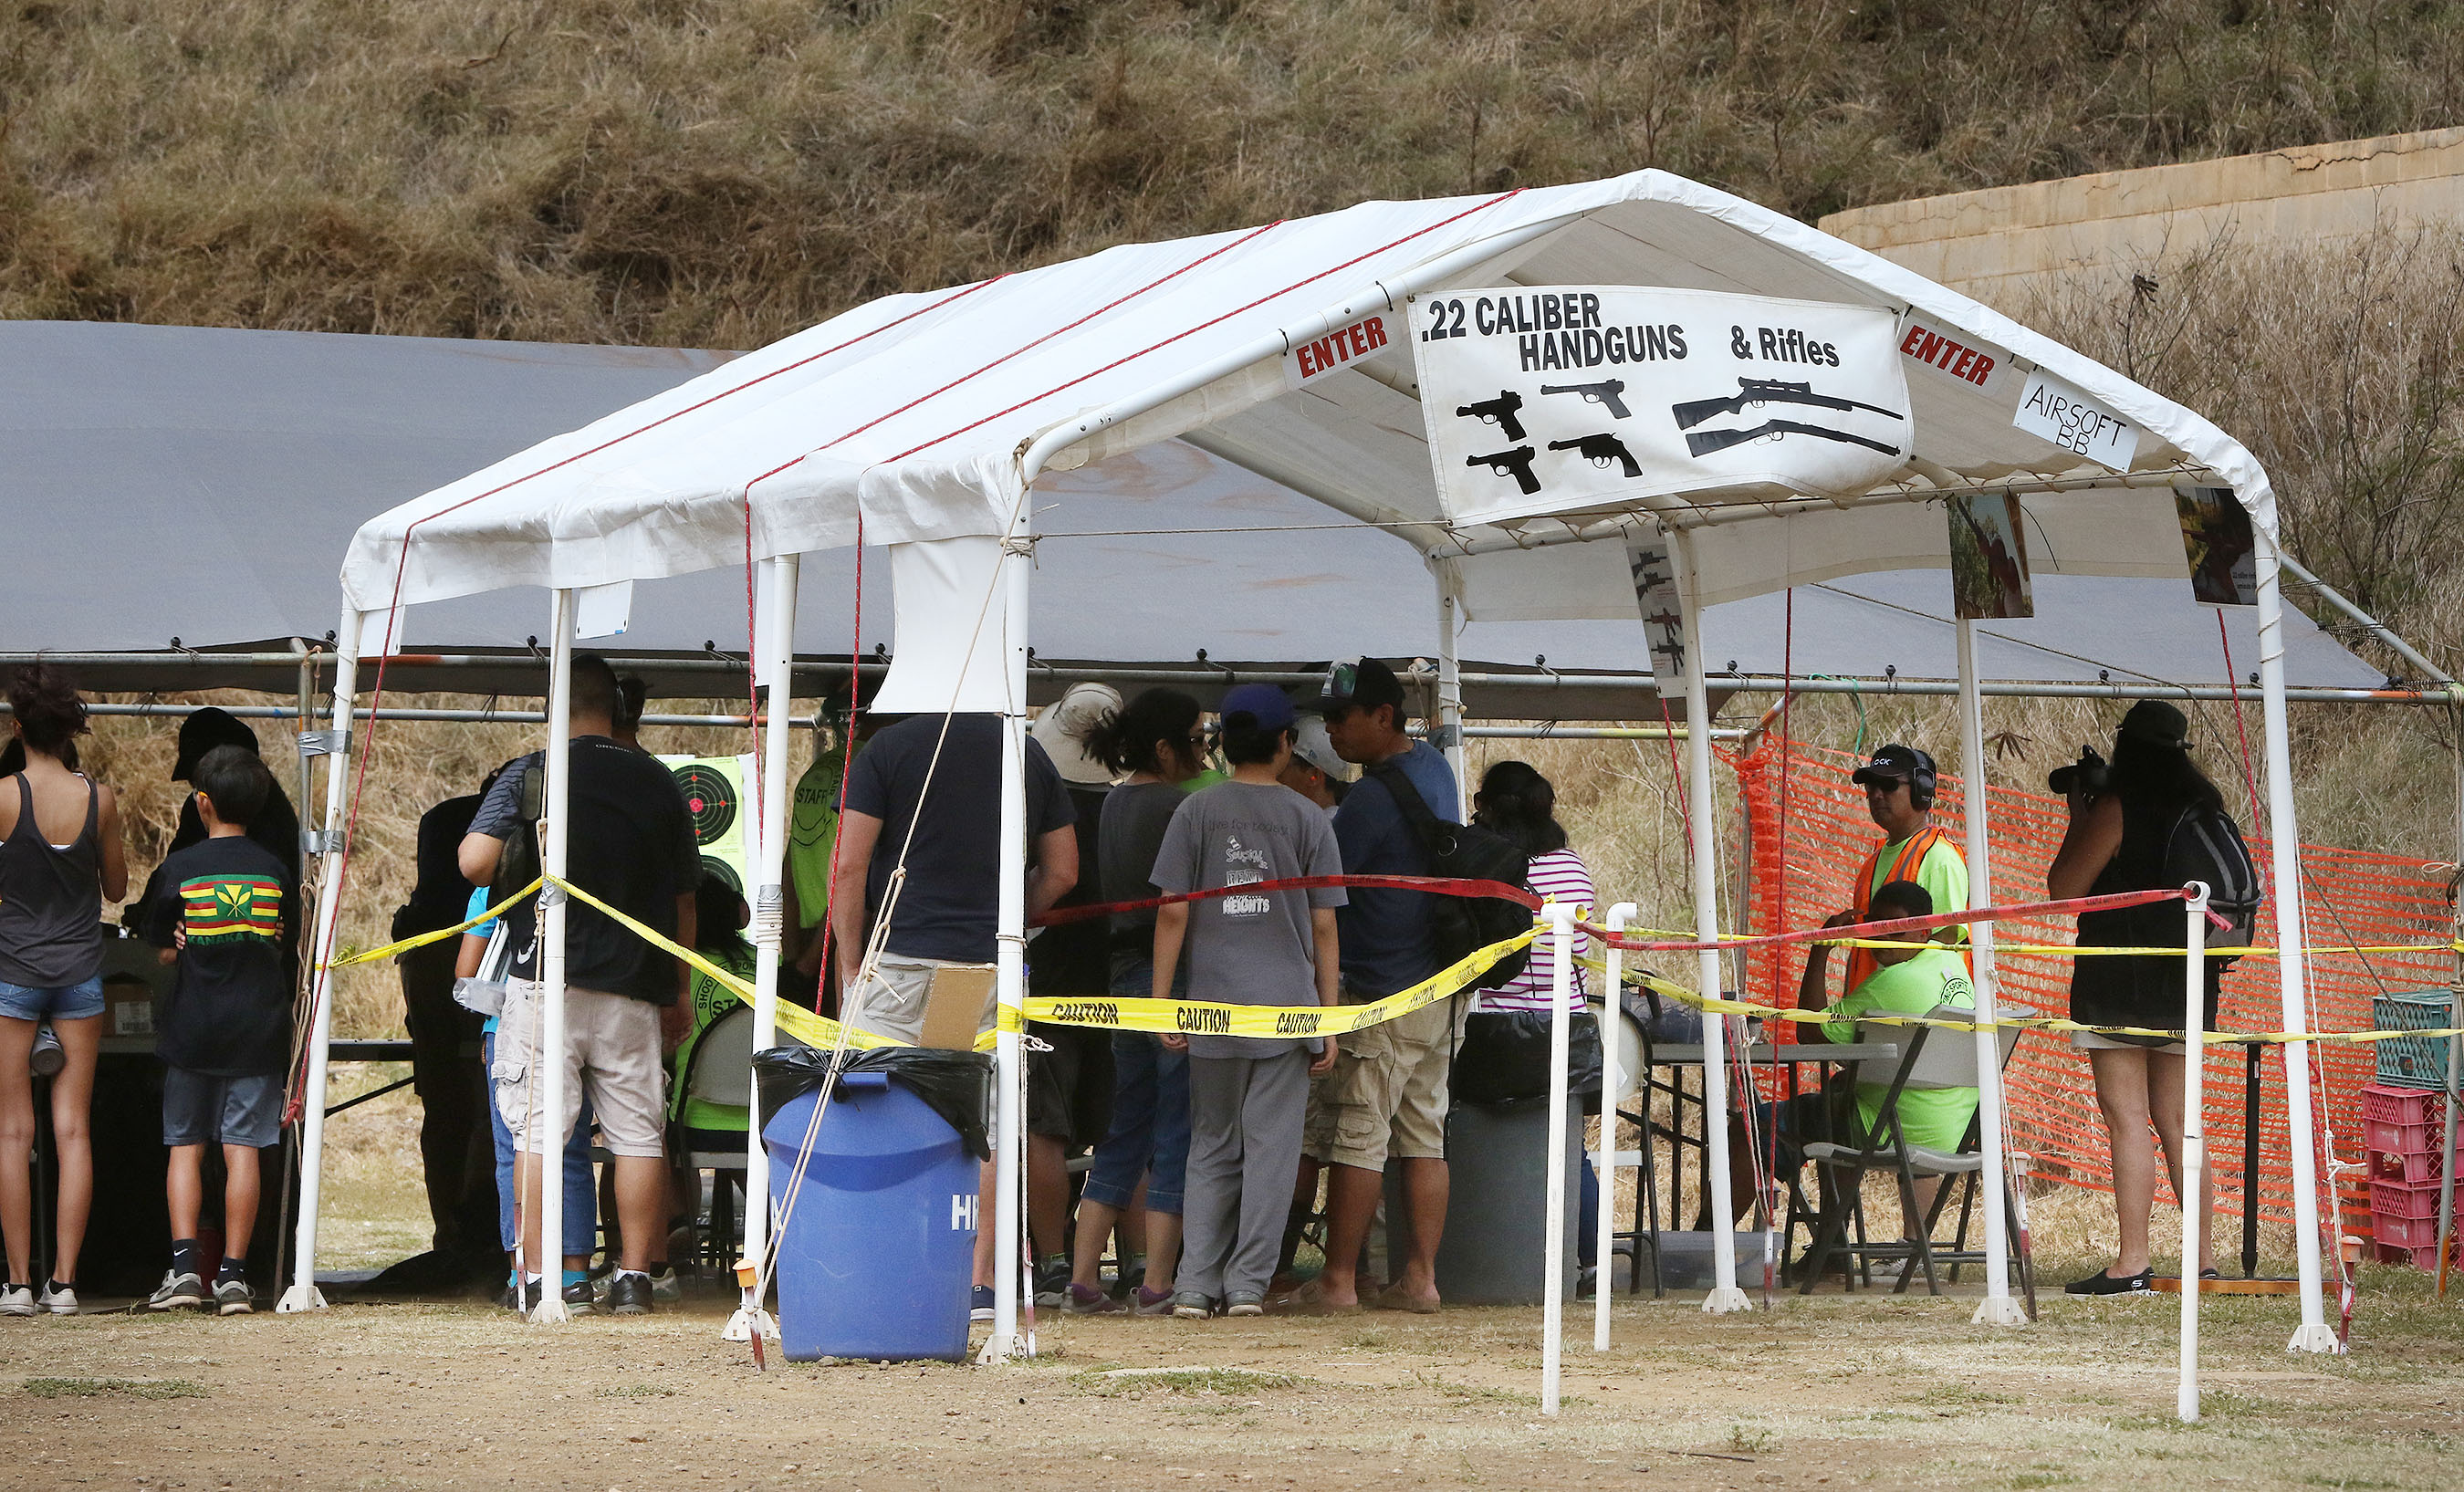 <p>Scores of people gathered in Hawaii Kai to fire guns at the 23rd annual event. The list of available weapons included tactical shotguns, big game rifles and &#8220;military small arms,&#8221; according to promotional material.</p>